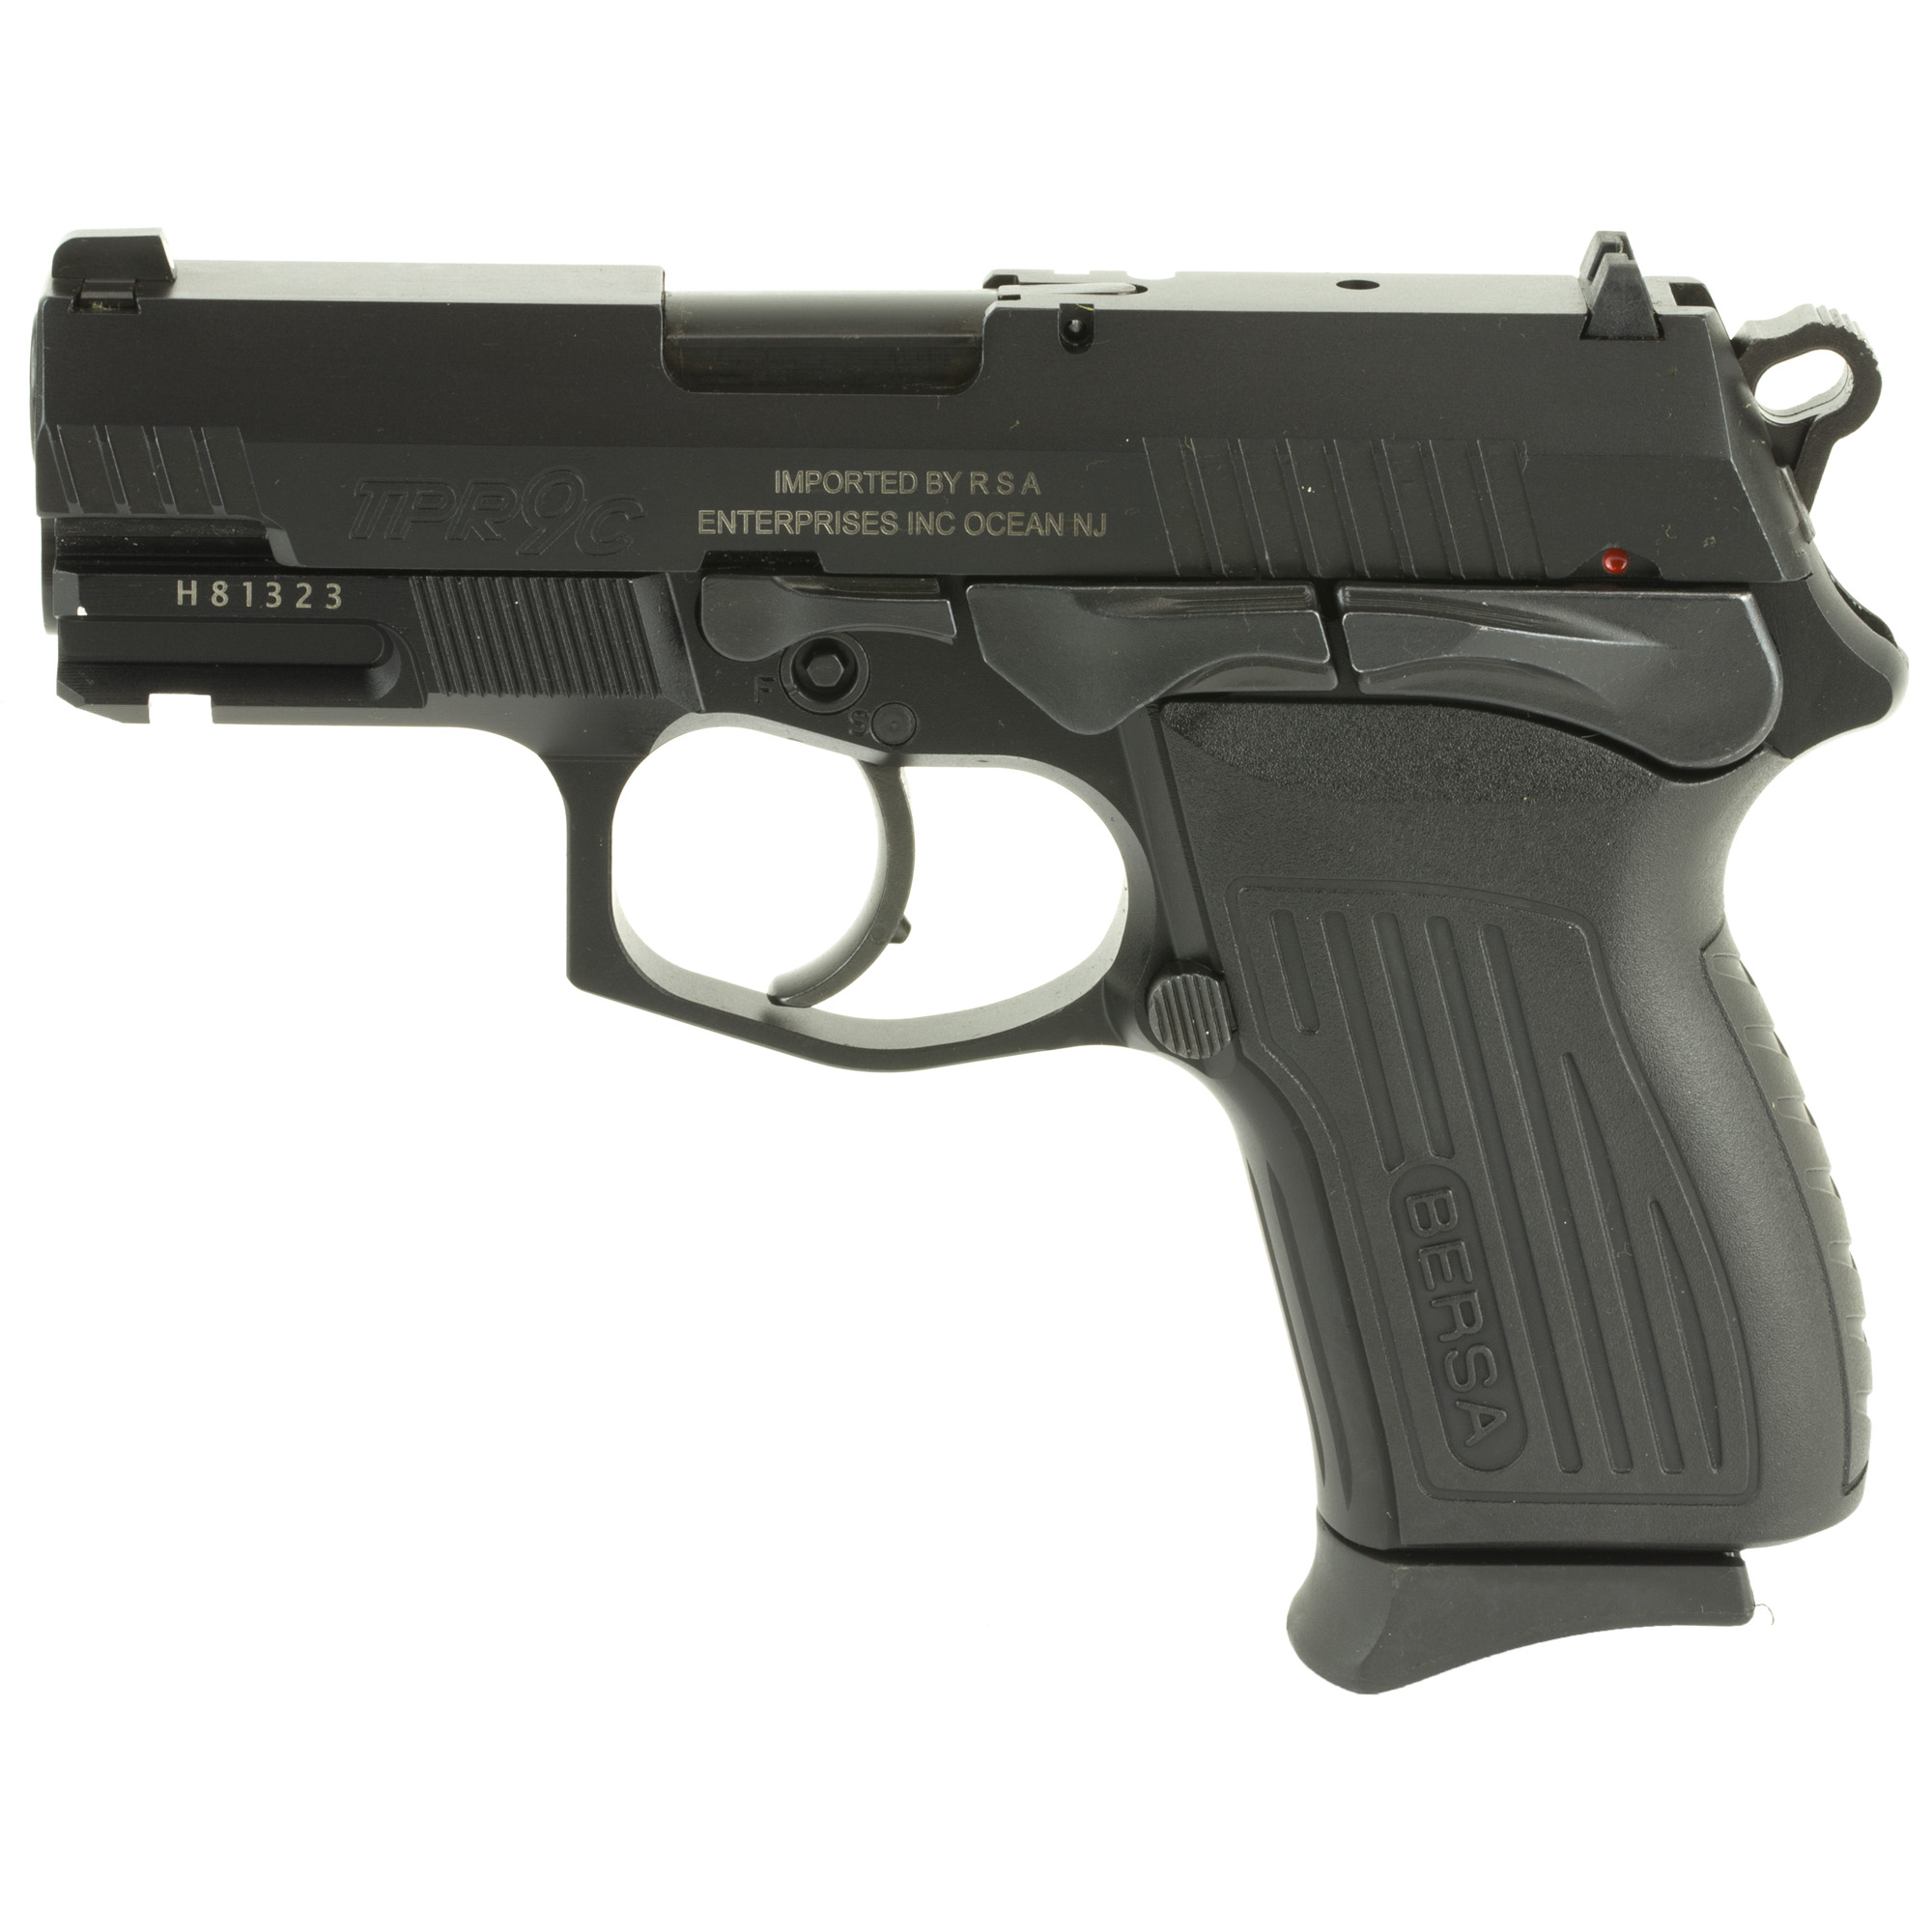 "Designed for law enforcement"" the TPR Series delivers the same rugged durability"" accuracy"" and reliability as the Bersa Thunder line. It's one of the most impressive handguns you can buy and one of the most comfortable and fun to shoot."